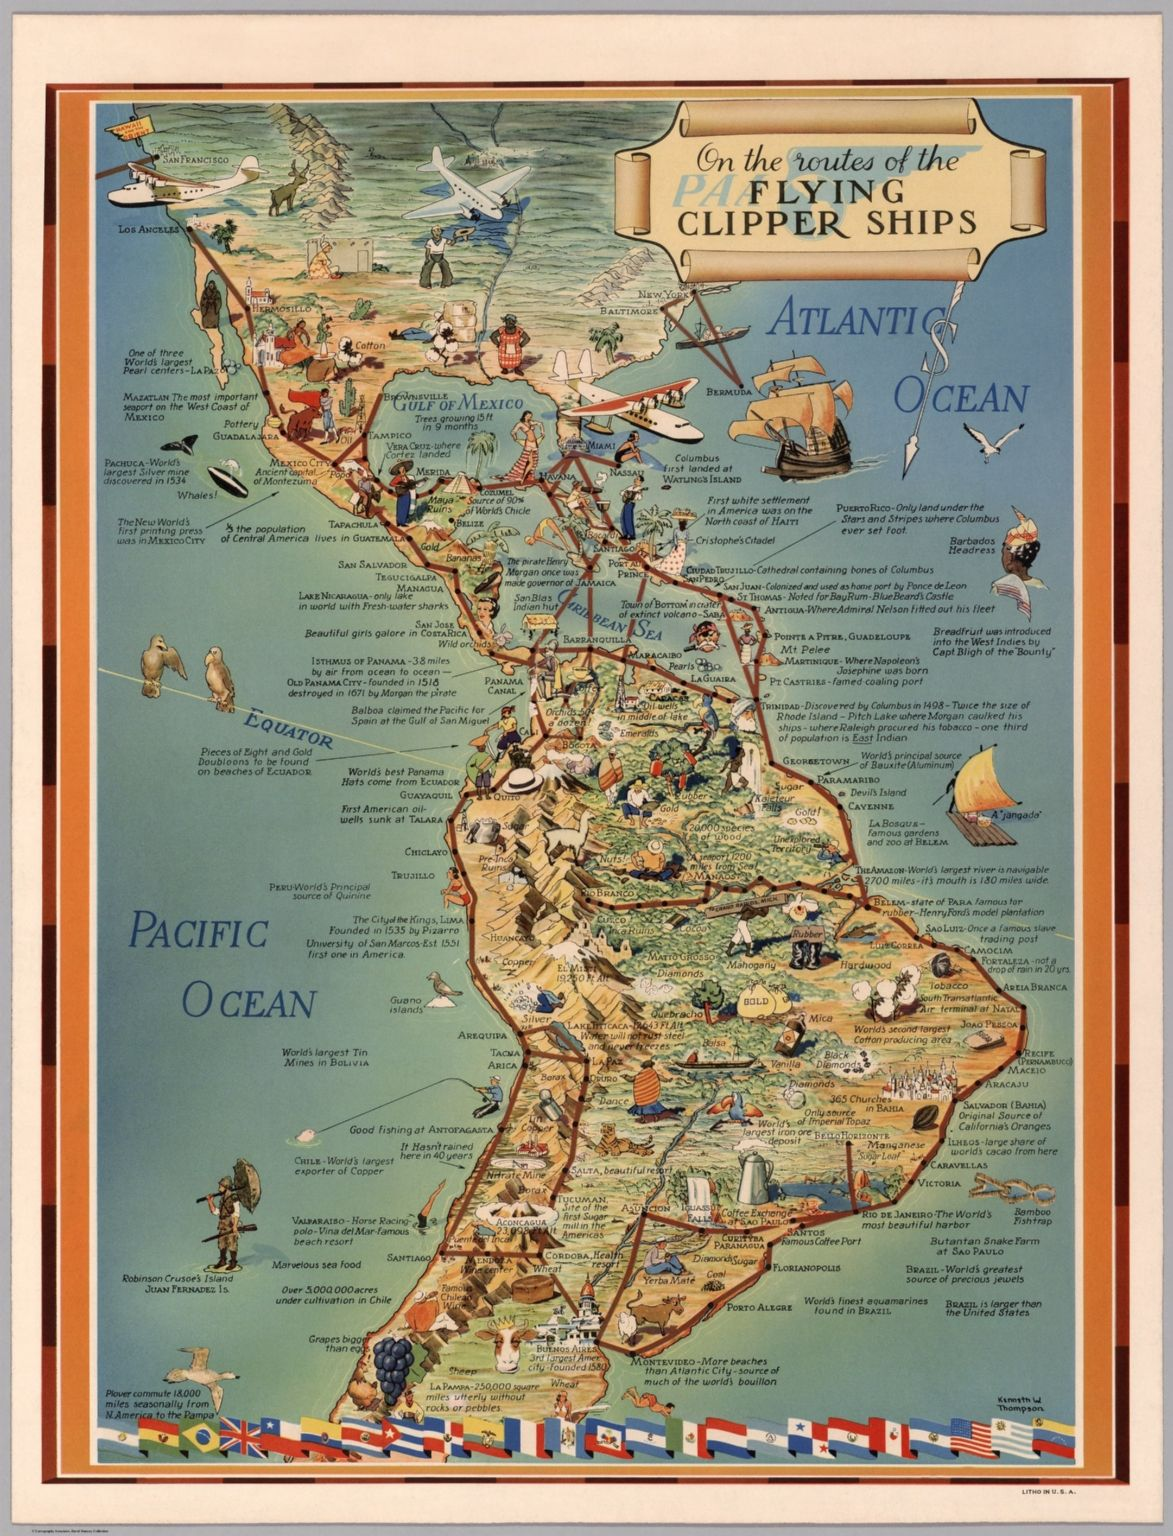 On the routes of the flying clipper ship (1940)